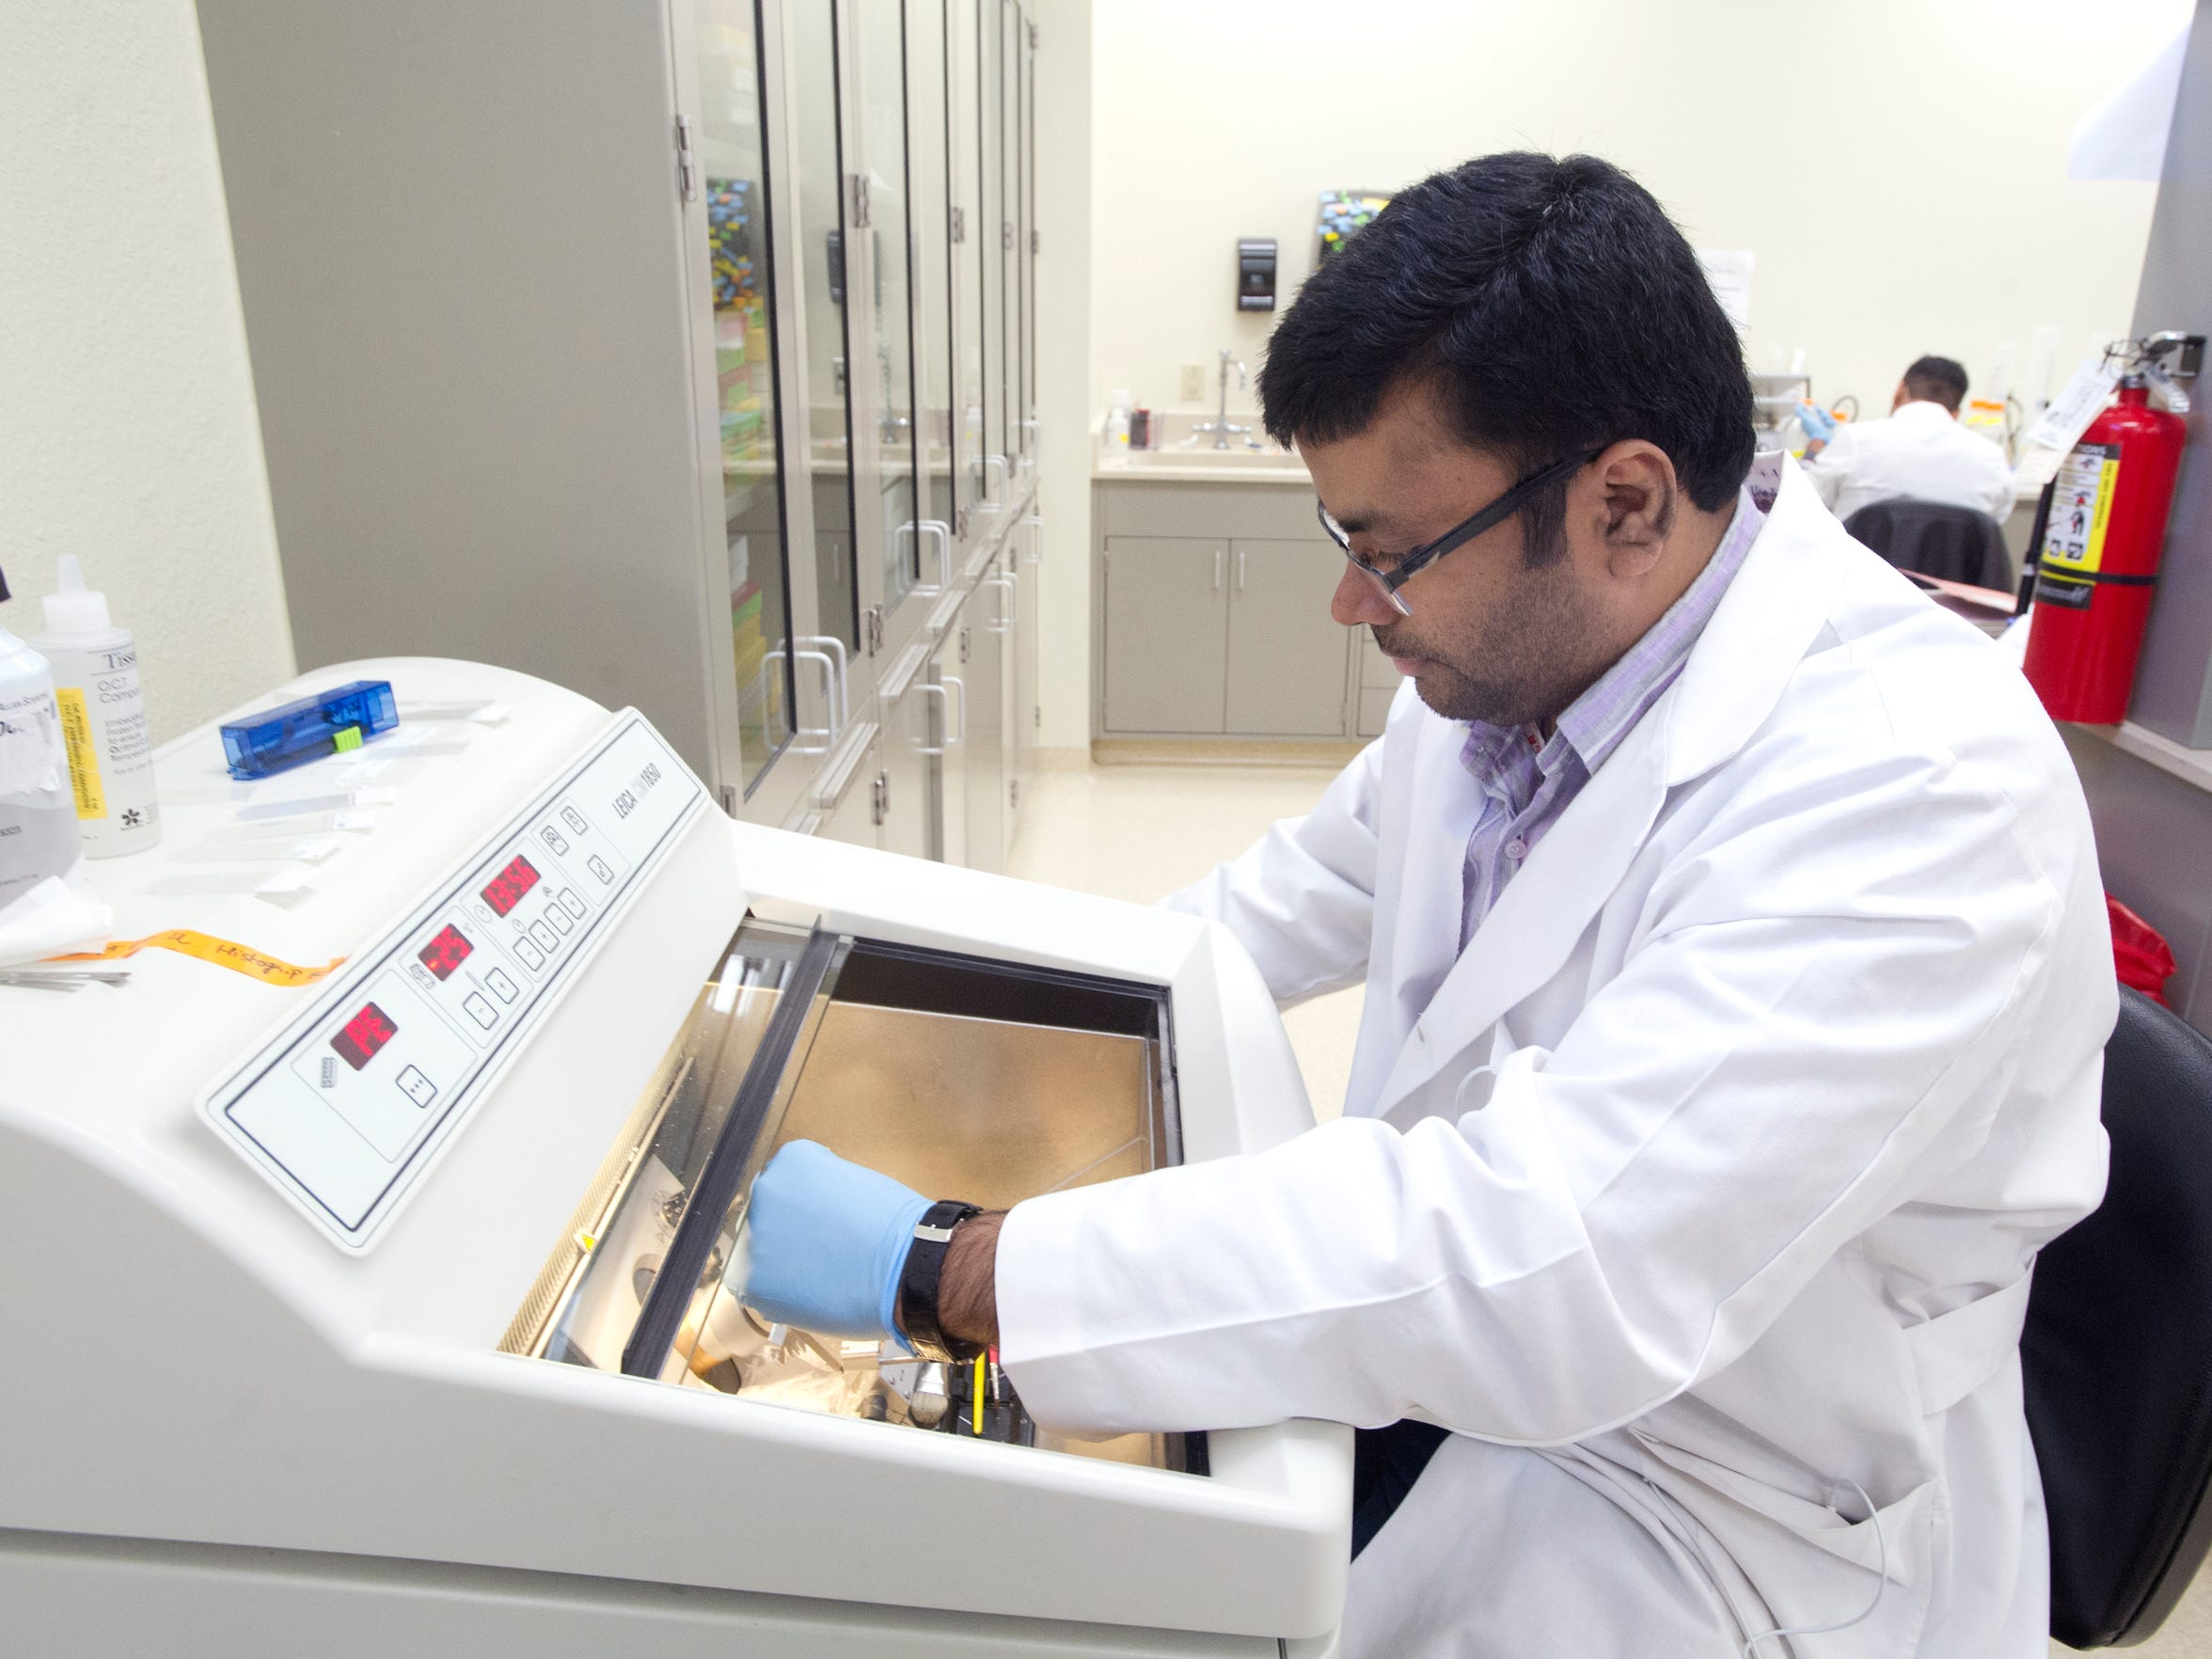 Shah Nawaz prepares tissue sections to study the effects of a new drug on lung cancer cells at the Texas Tech School of Pharmacy research lab.